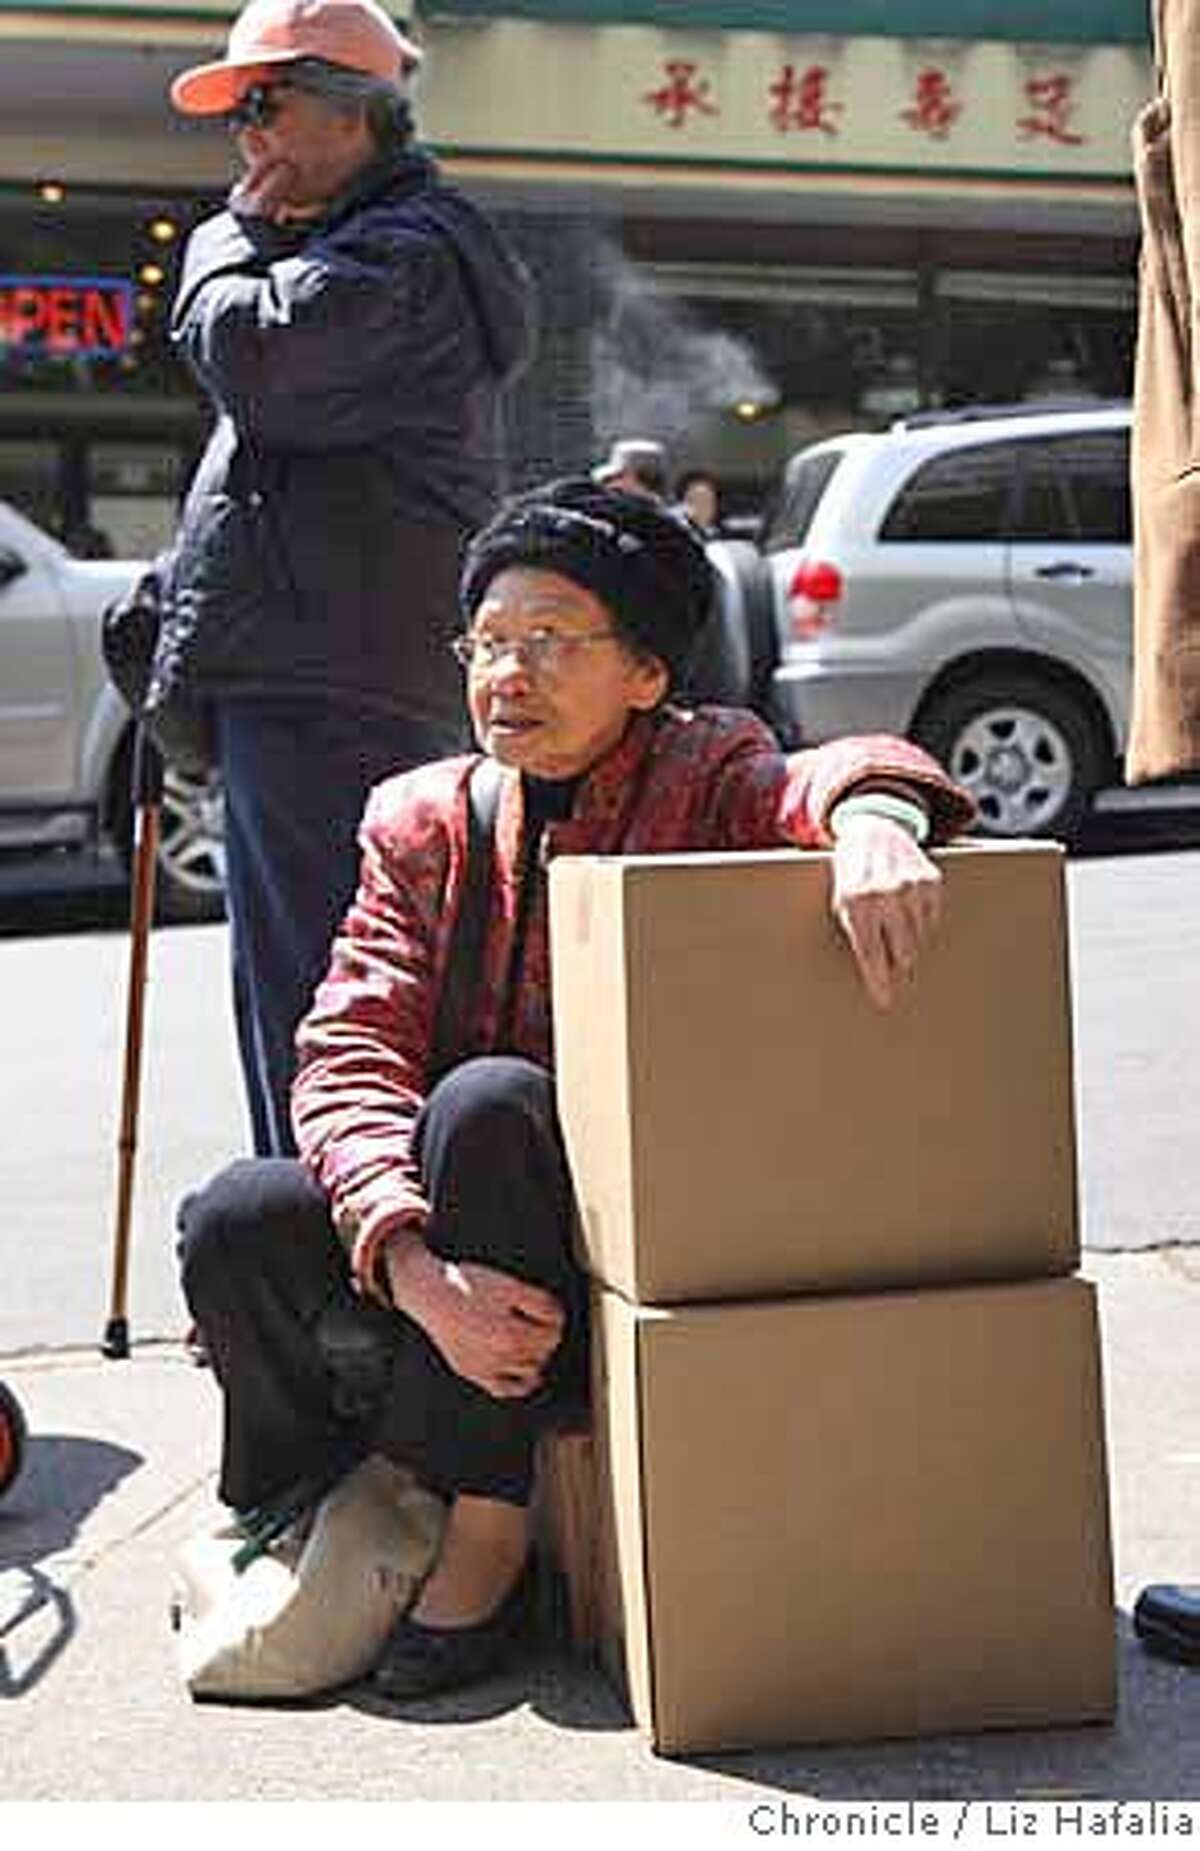 ###Live Caption:Shu Hing Seto Wu, 80 years old, waiting by her food boxes at Ping Yuen in Chinatown in San Francisco, Calif., as the San Francisco Food Bank does a senior food giveaway on Monday, April 21, 2008. Federal budget cuts make it difficult to restore an already cut program, where seniors who get less that $1,100 a month were given food boxes once a month. Liz Hafalia / The Chronicle / {city } / 4/21/08 **Shu Hing Seto Wu cq Photo by Liz Hafalia / San Francisco Chronicle###Caption History:Shu Hing Seto Wu, 80 years old, waiting by her food boxes at Ping Yuen in Chinatown in San Francisco, Calif., as the San Francisco Food Bank does a senior food giveaway on Monday, April 21, 2008. Federal budget cuts make it difficult to restore an already cut program, where seniors who get less that $1,100 a month were given food boxes once a month. Liz Hafalia / The Chronicle / {city } / 4/21/08 **Shu Hing Seto Wu cq Photo by Liz Hafalia / San Francisco Chronicle###Notes:Shu Hing Seto Wu, 80 years old, waiting by her food boxes at Ping Yuen in Chinatown in San Francisco, Calif., as the San Francisco Food Bank does a senior food giveaway on Monday, April 21, 2008. Federal budget cuts make it difficult to restore an alre###Special Instructions:�2008, San Francisco Chronicle/ Liz Hafalia MANDATORY CREDIT FOR PHOTOG AND SAN FRANCISCO CHRONICLE. NO SALES- MAGS OUT.